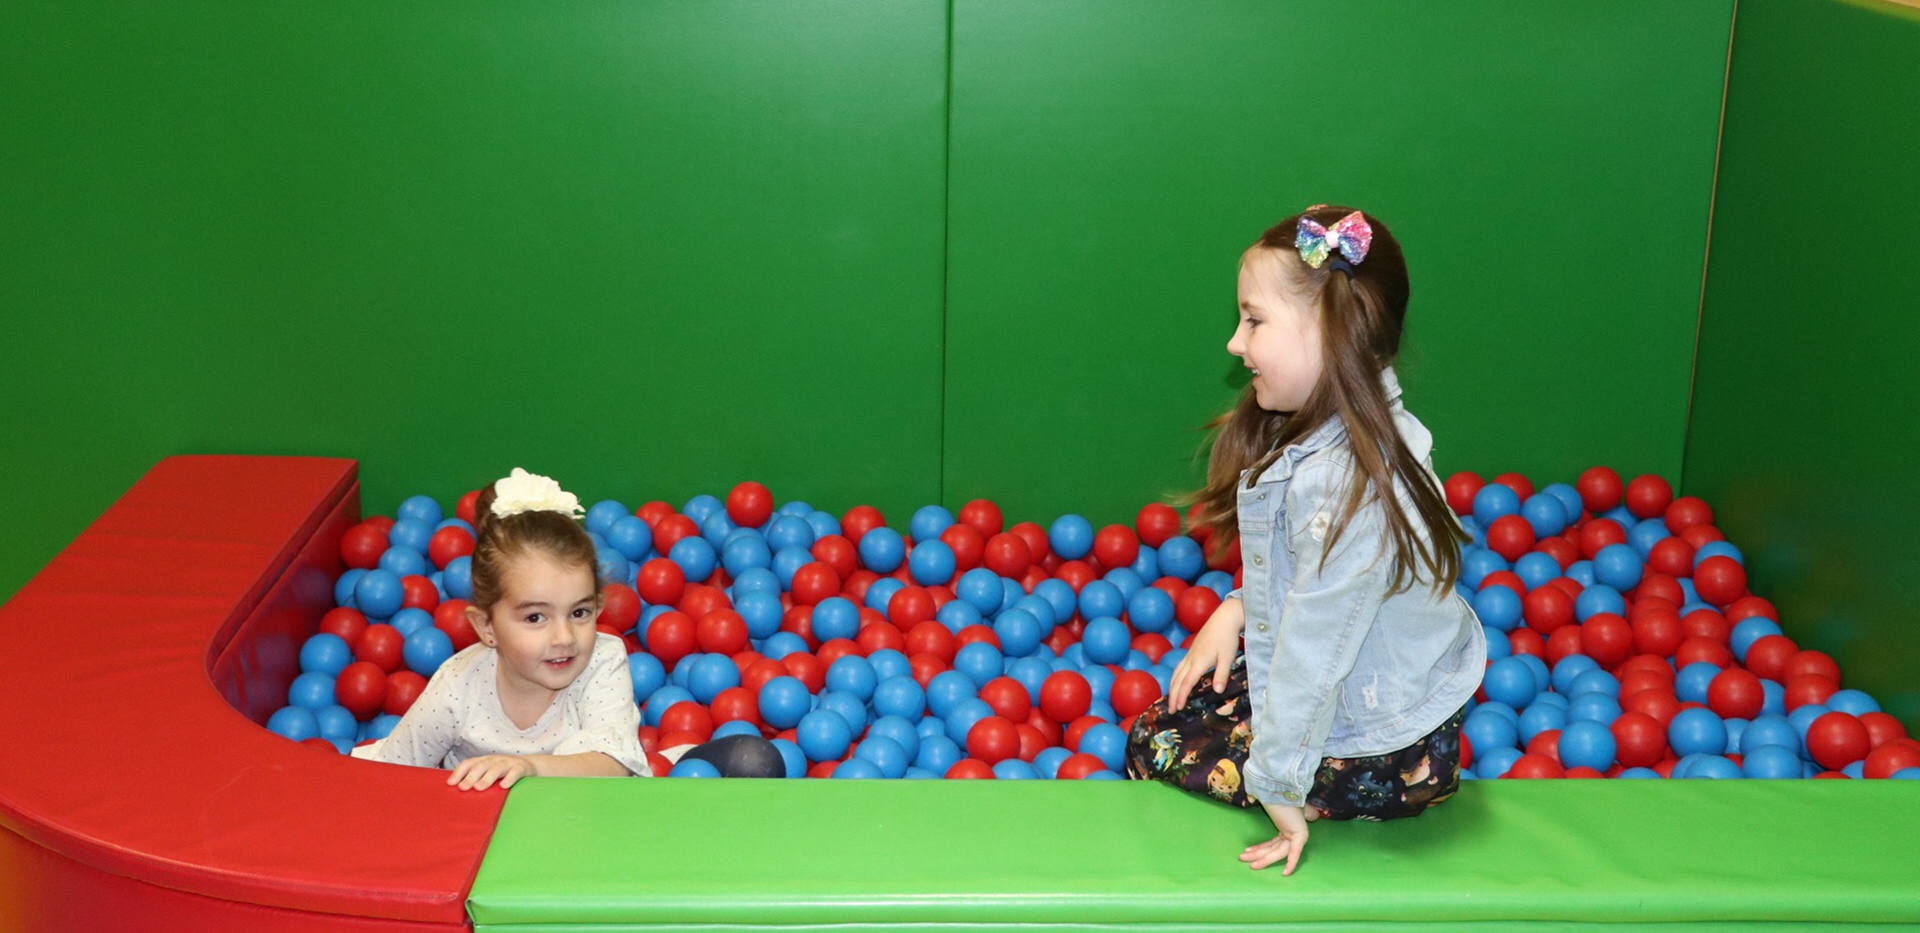 Workies Wizards Kids Room Soft Play Area